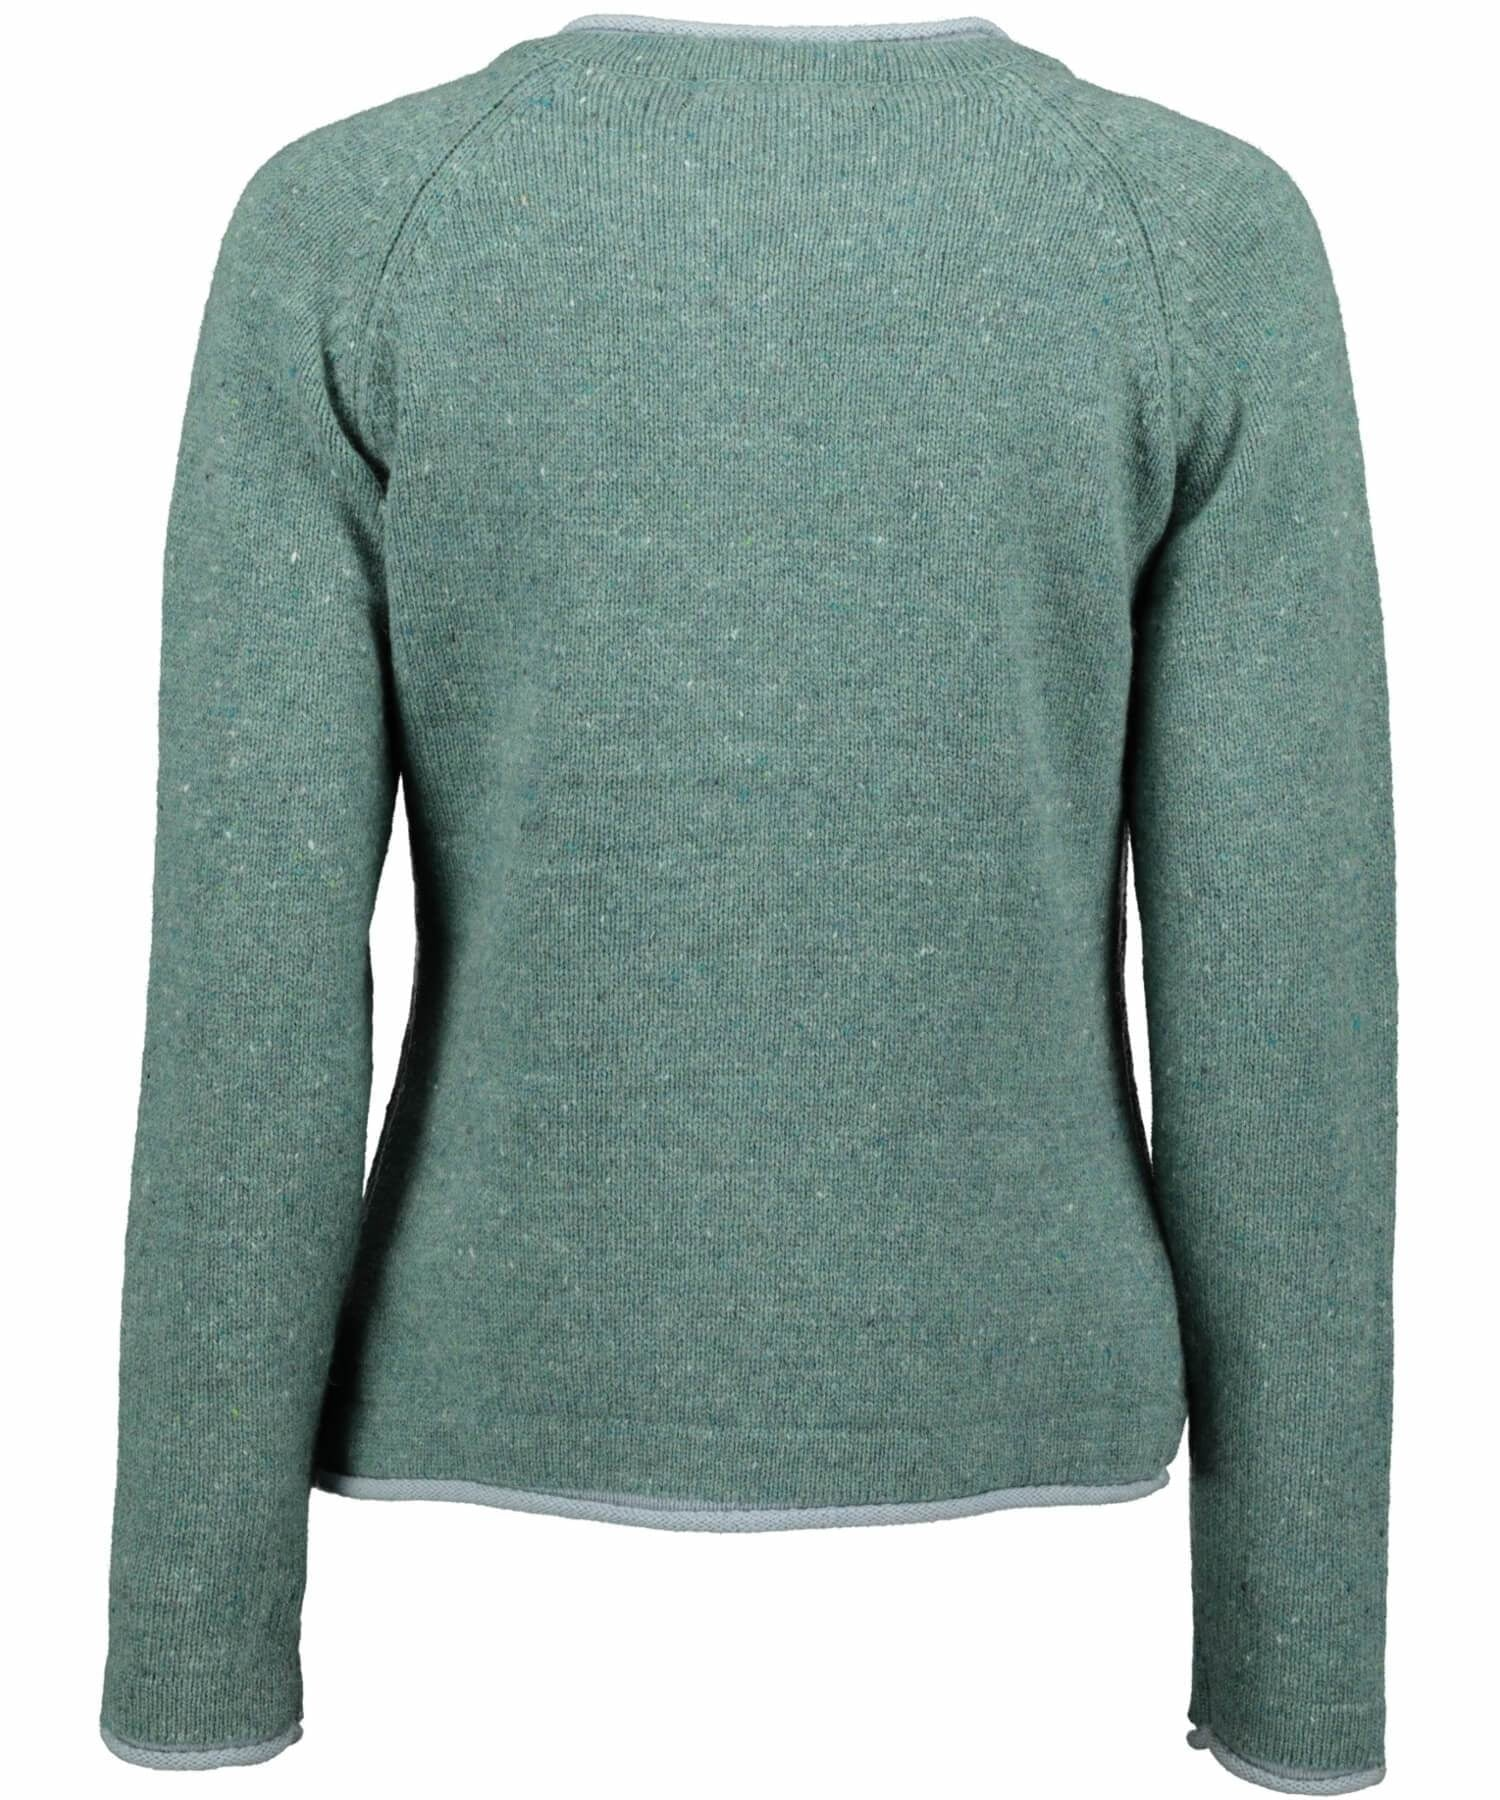 Killiney Cardigan - Seagreen Marl - [Irelands Eye] - Ladies Sweaters & Cardigans - Irish Gifts